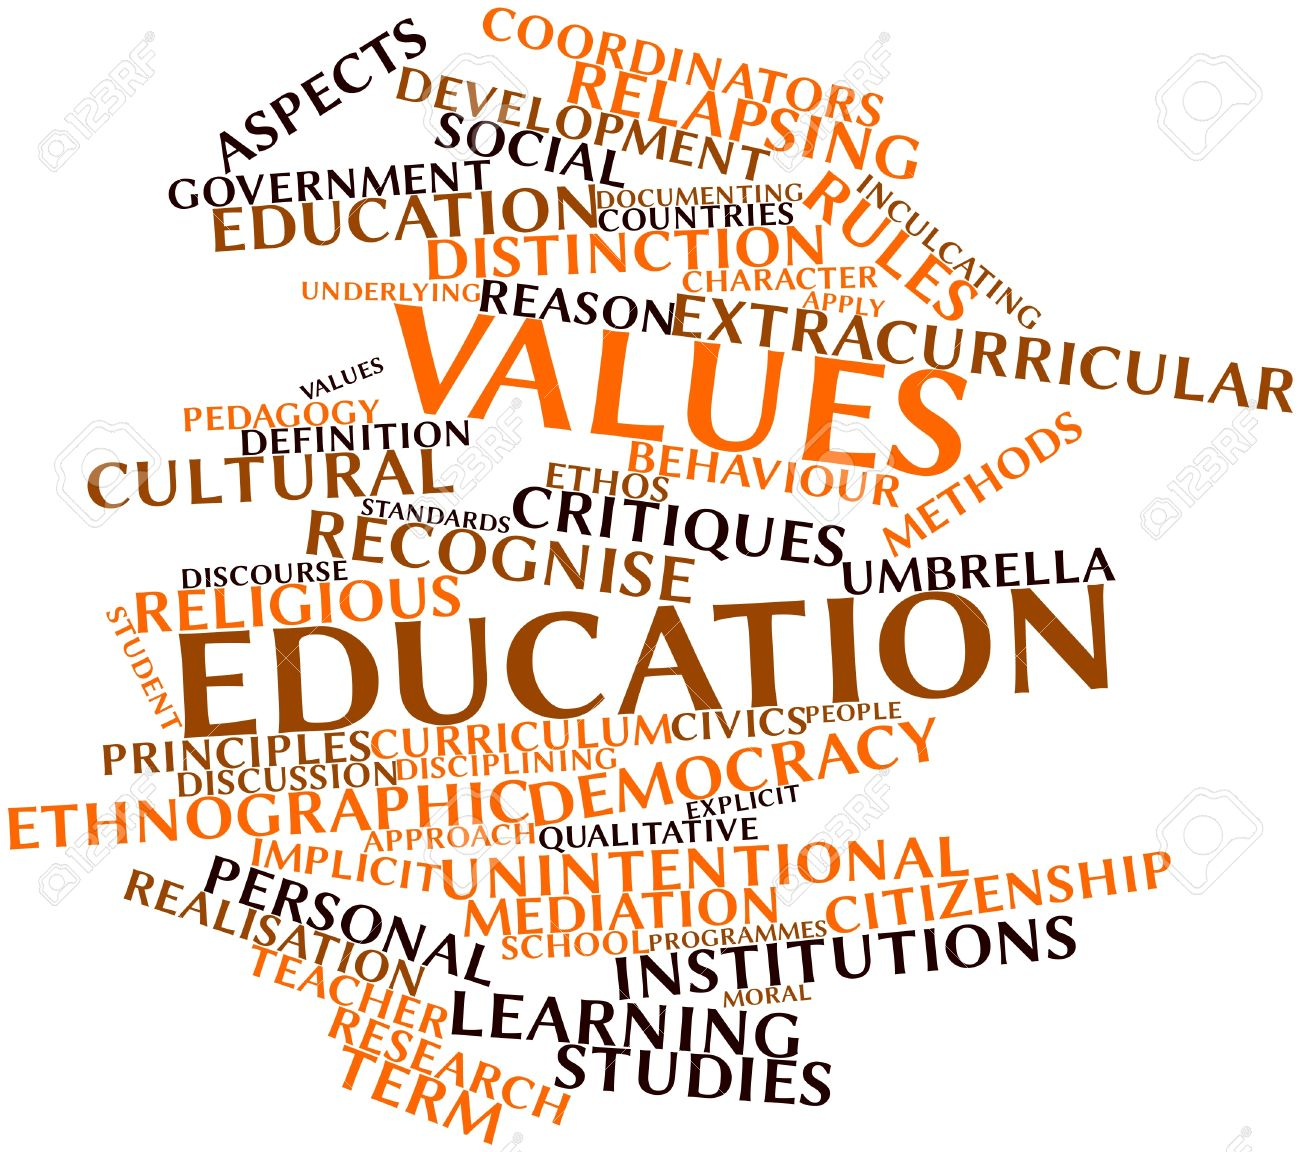 moral values of education